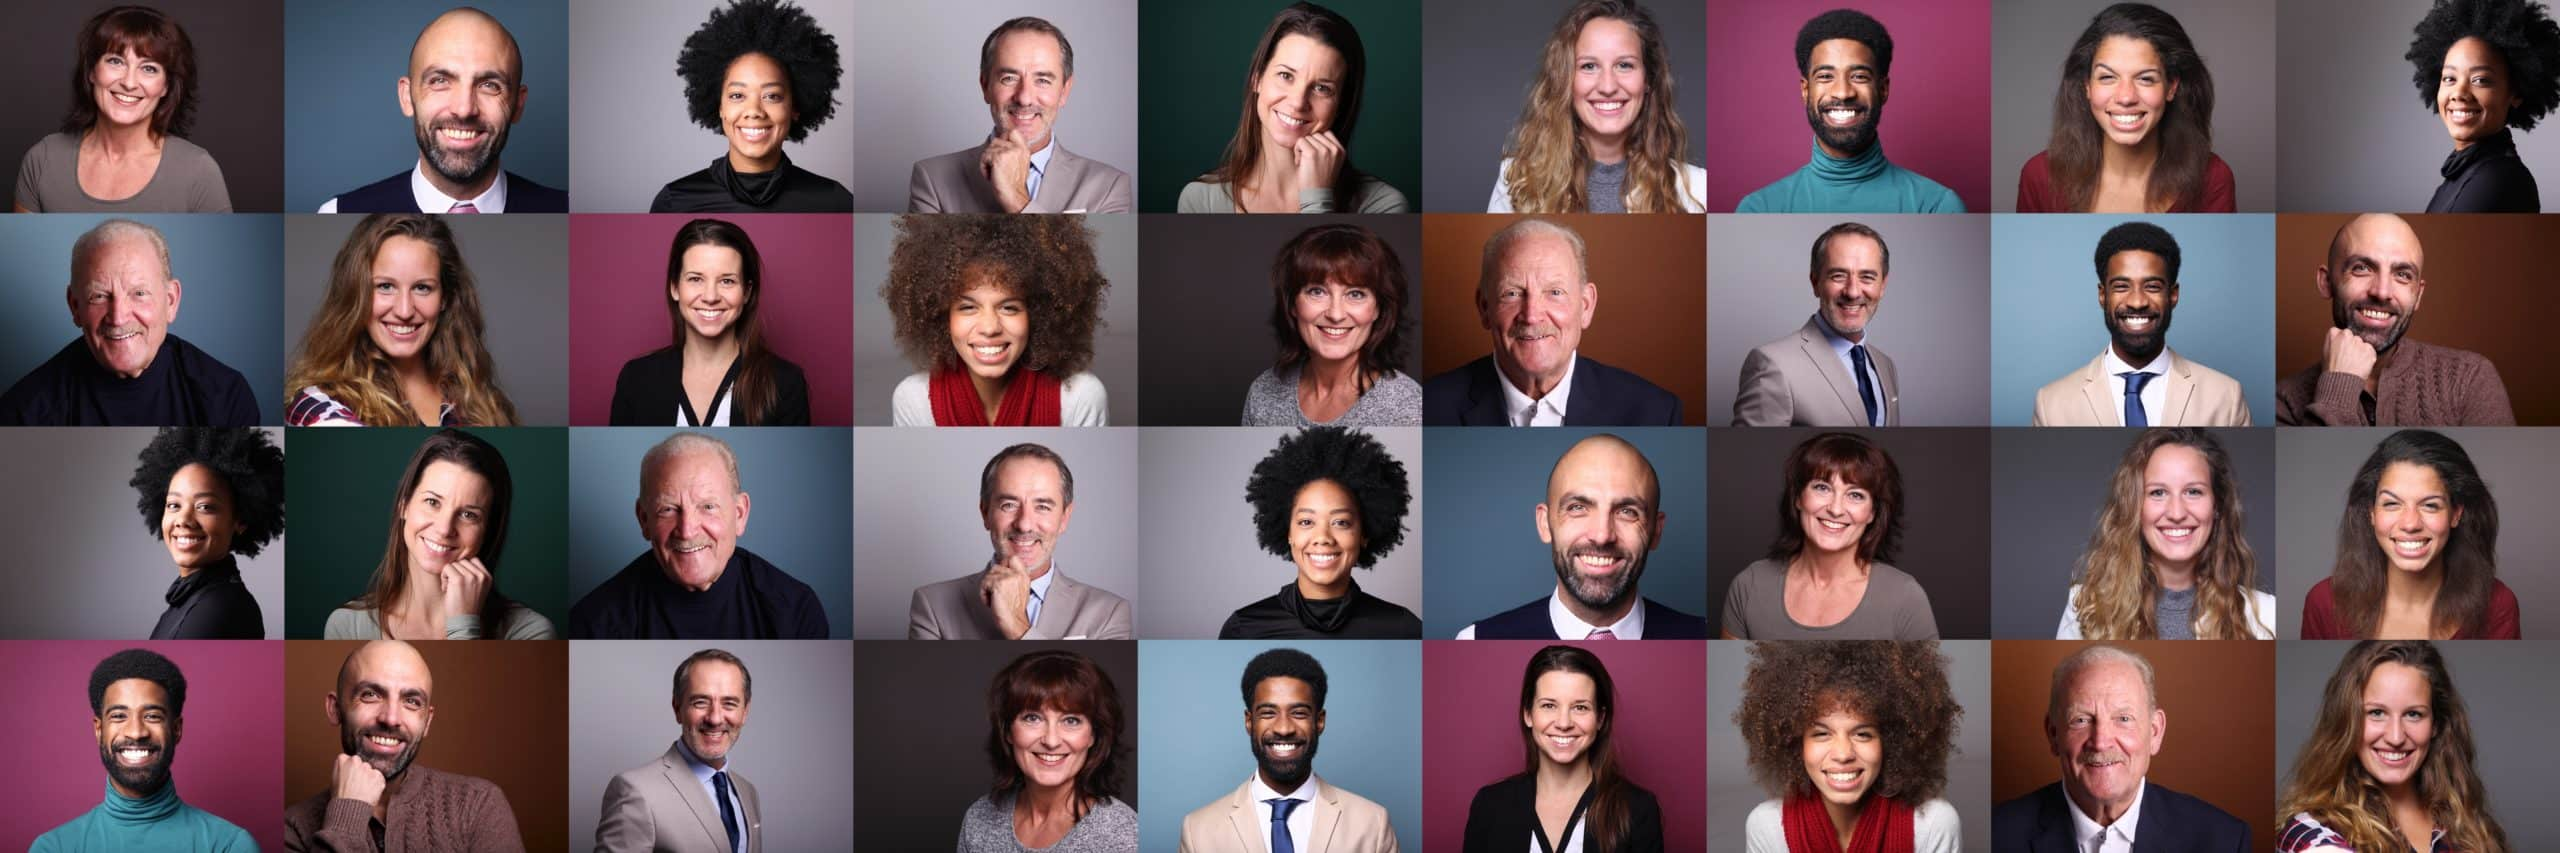 Expert Talks Power of Workplace Diversity, Equity & Inclusion in New Webinar